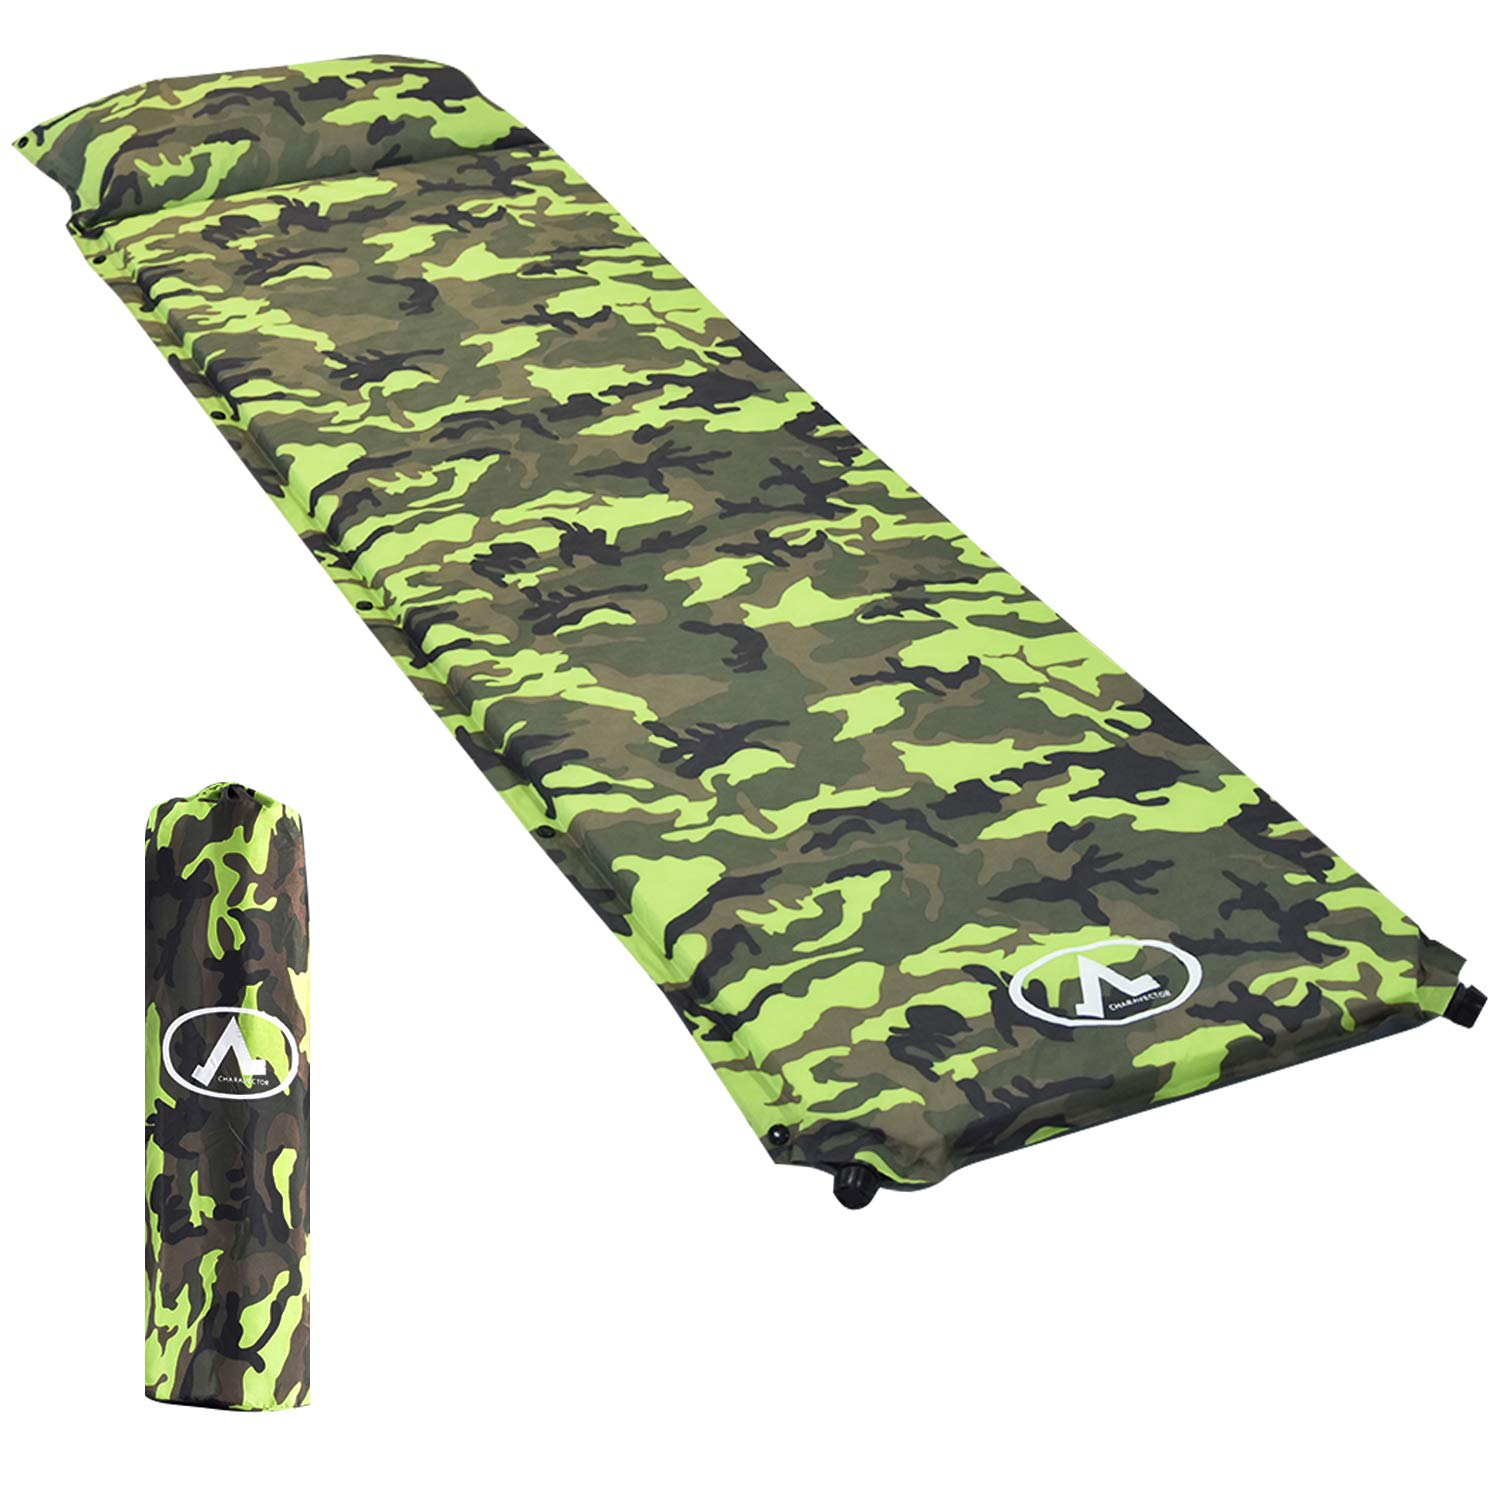 NSdirect 2'' Camping Self Inflating Sleeping Pad with Pillow, Moisture-Free, Lightweight Foam Mat, Perfect for Backpacking, Hiking and Camping, Compact by NSdirect